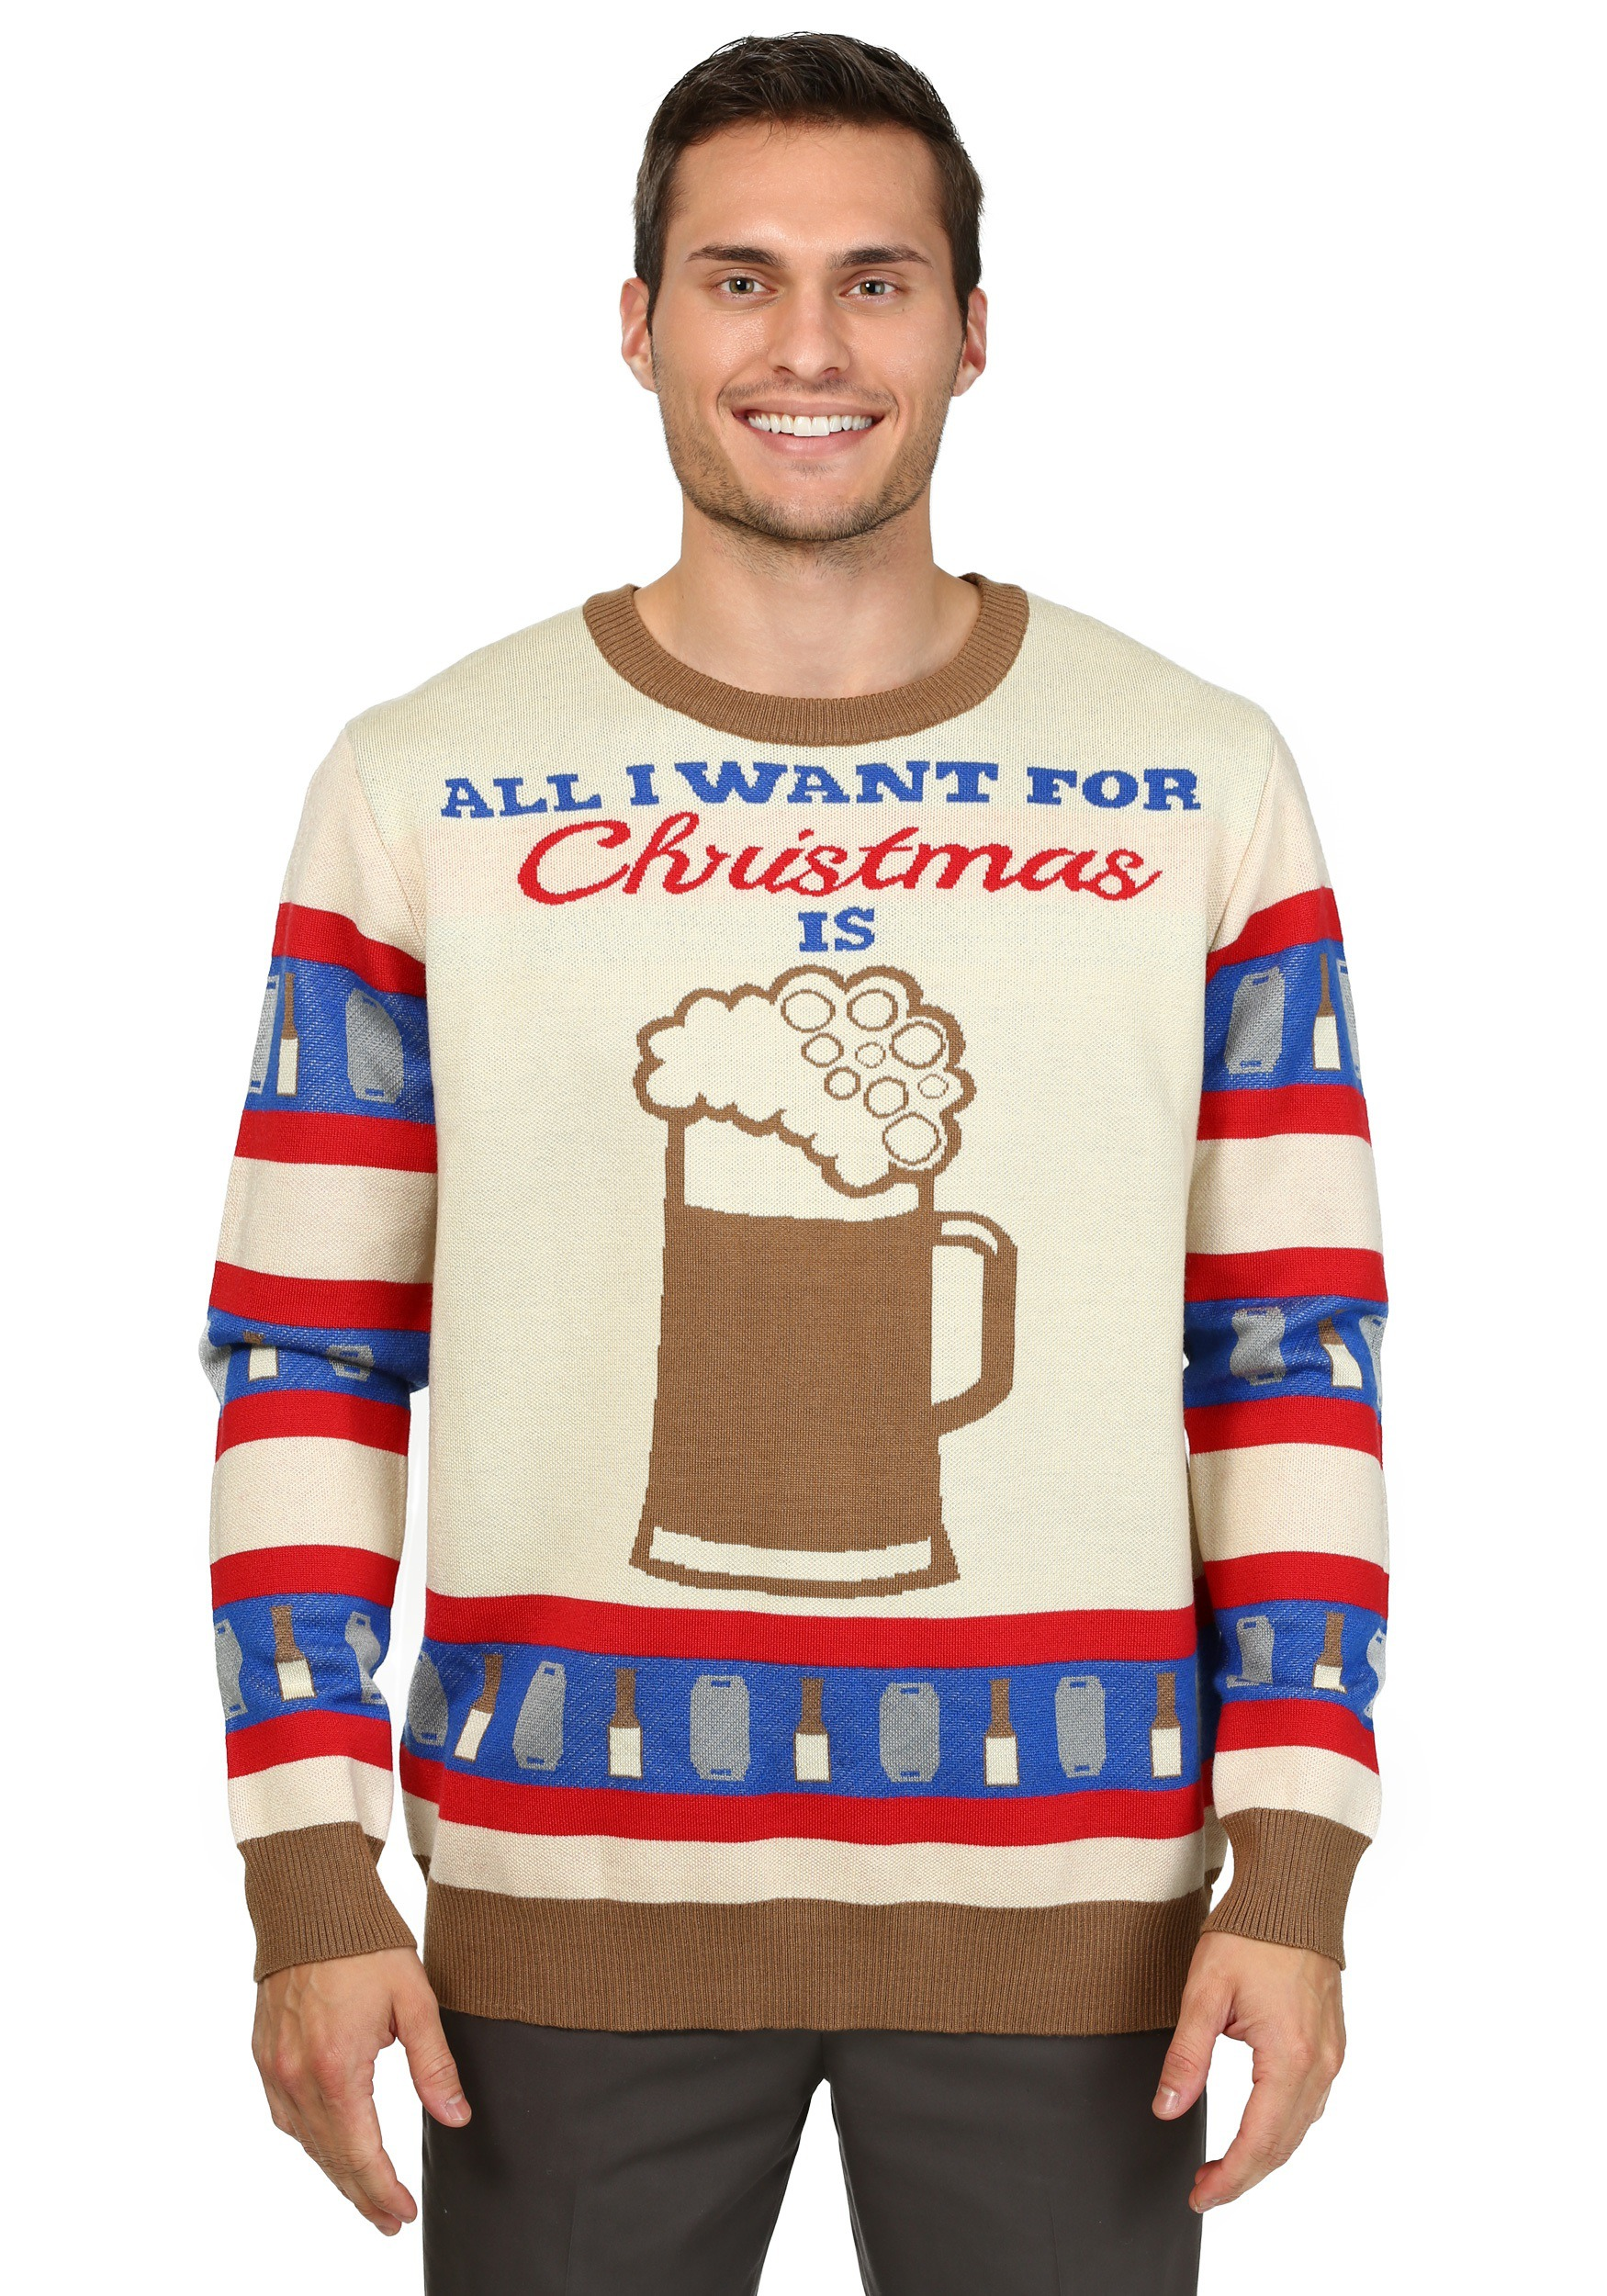 All I Want for Christmas is Beer Ugly Christmas Sweater